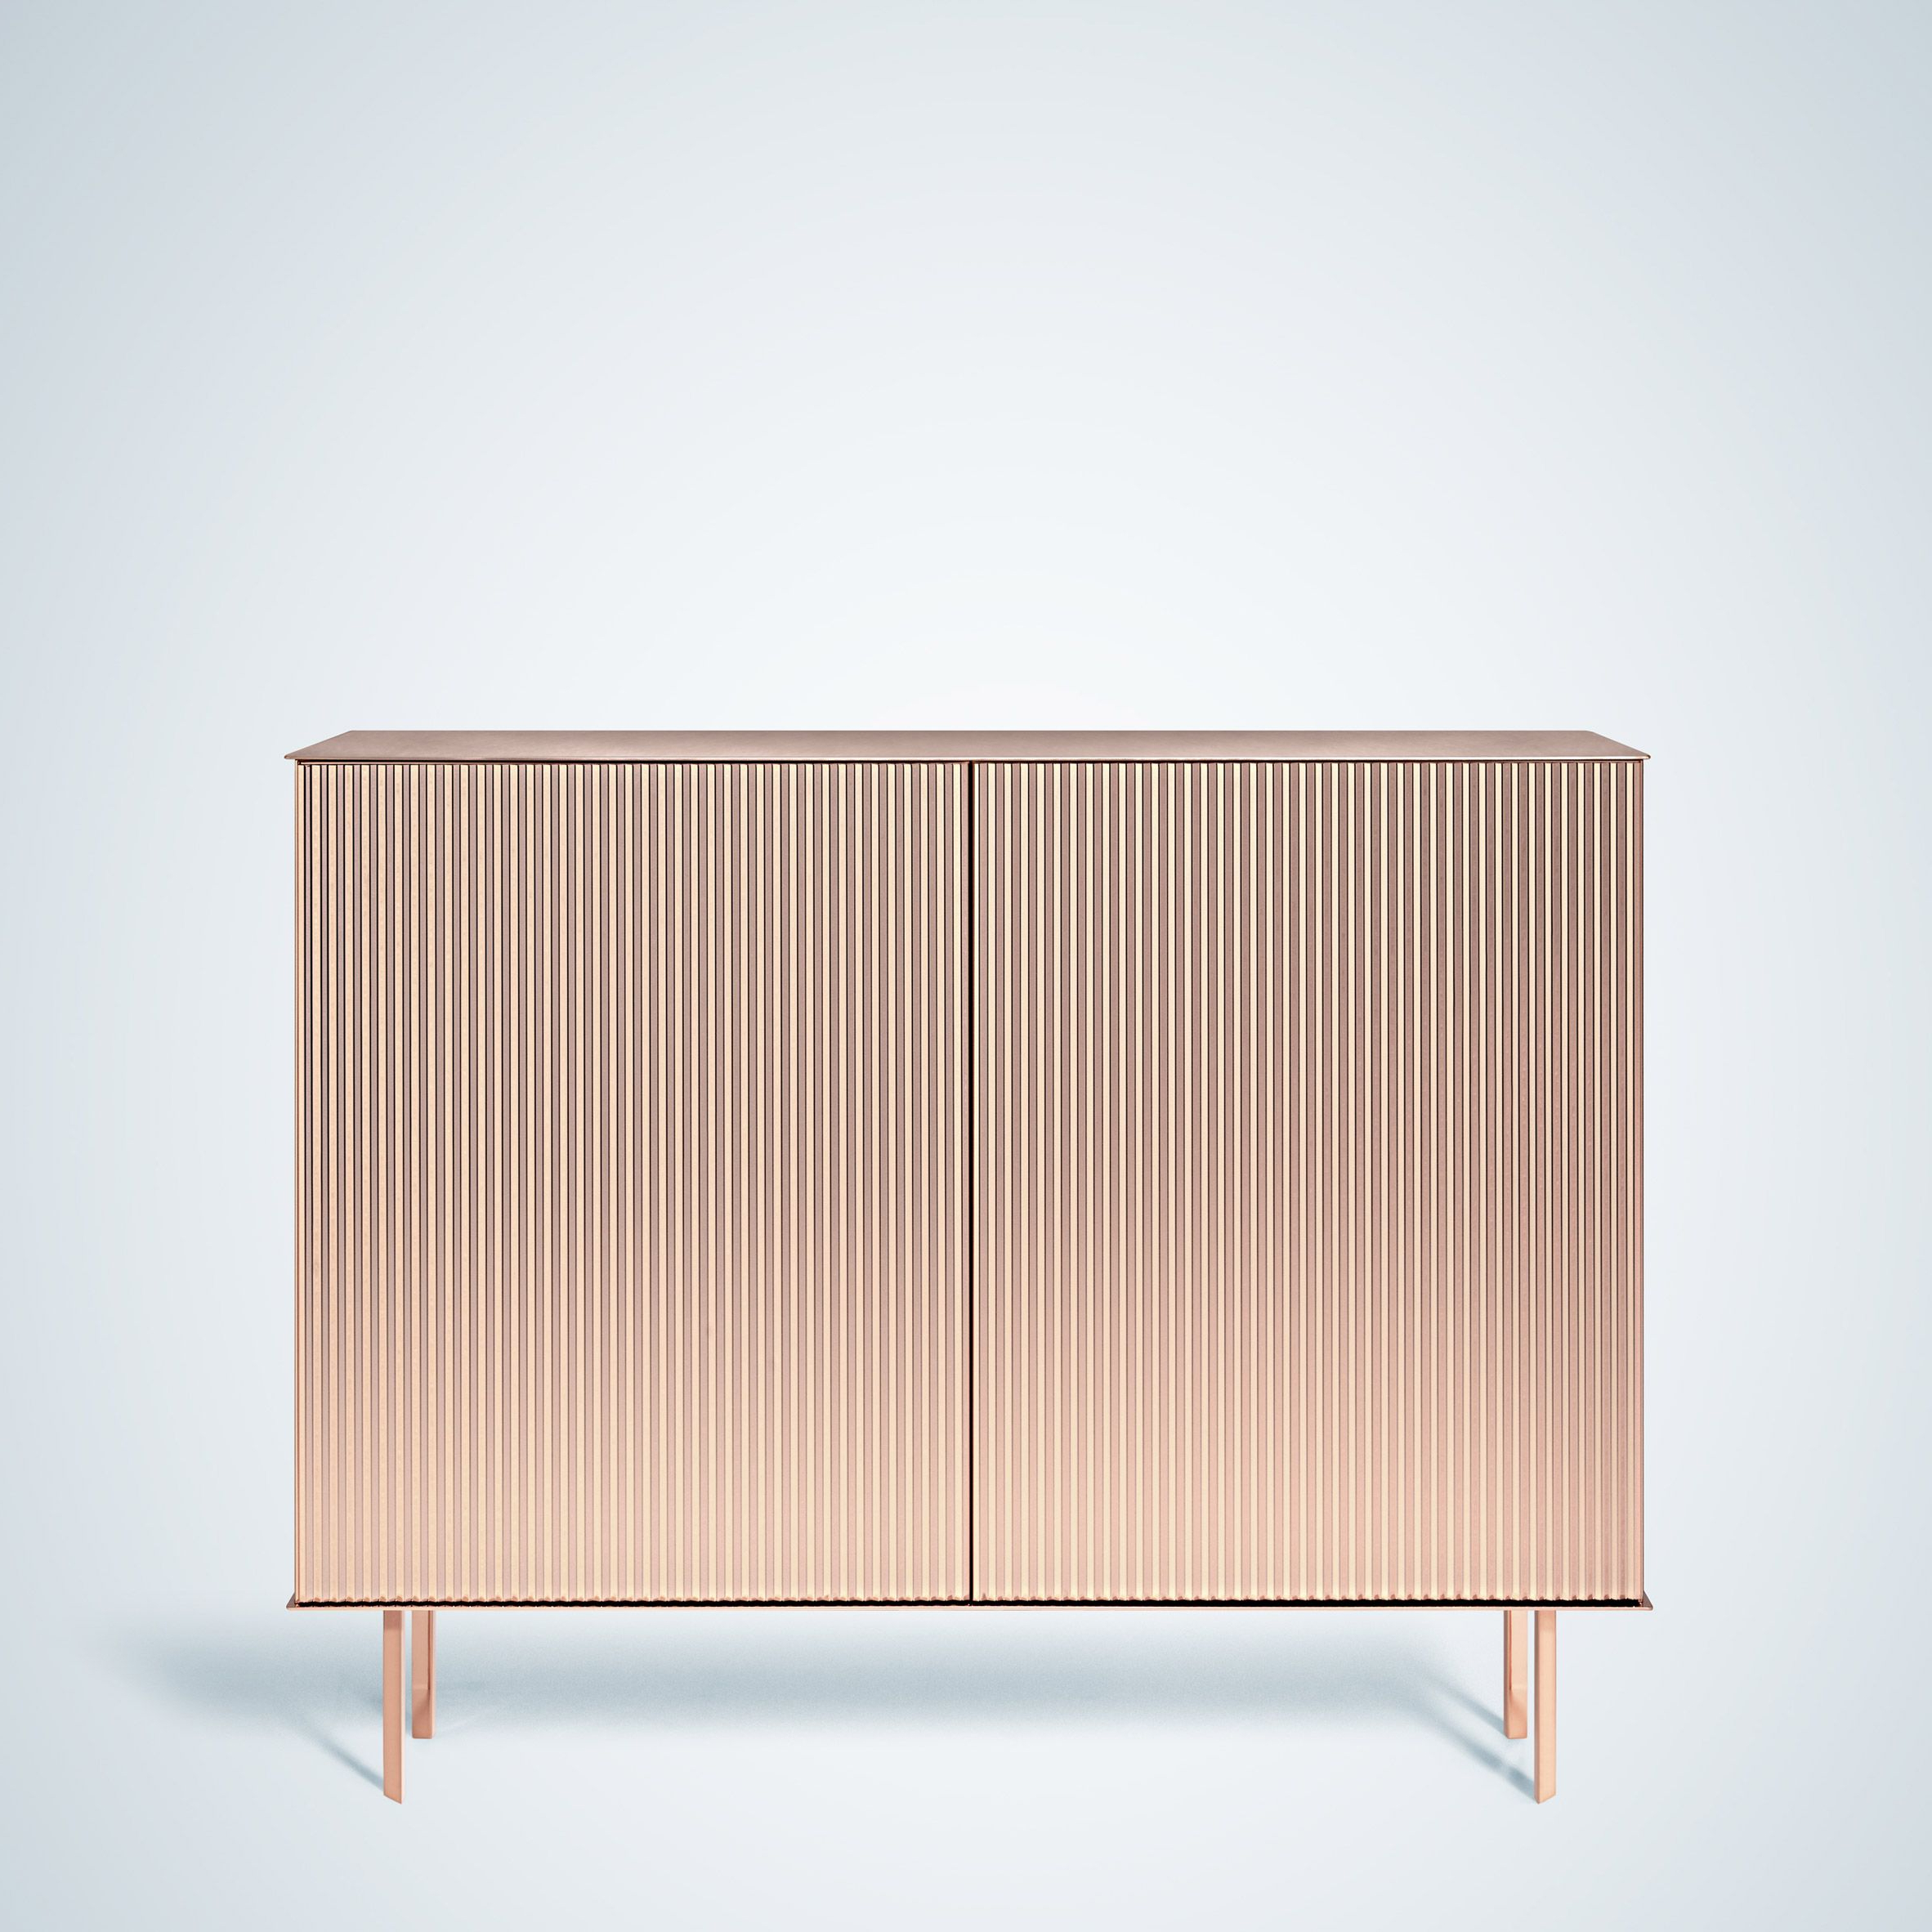 Newest Italian Metal Brand De Castelli Worked With Seven Female Pertaining To Castelli Sideboards (Gallery 18 of 20)